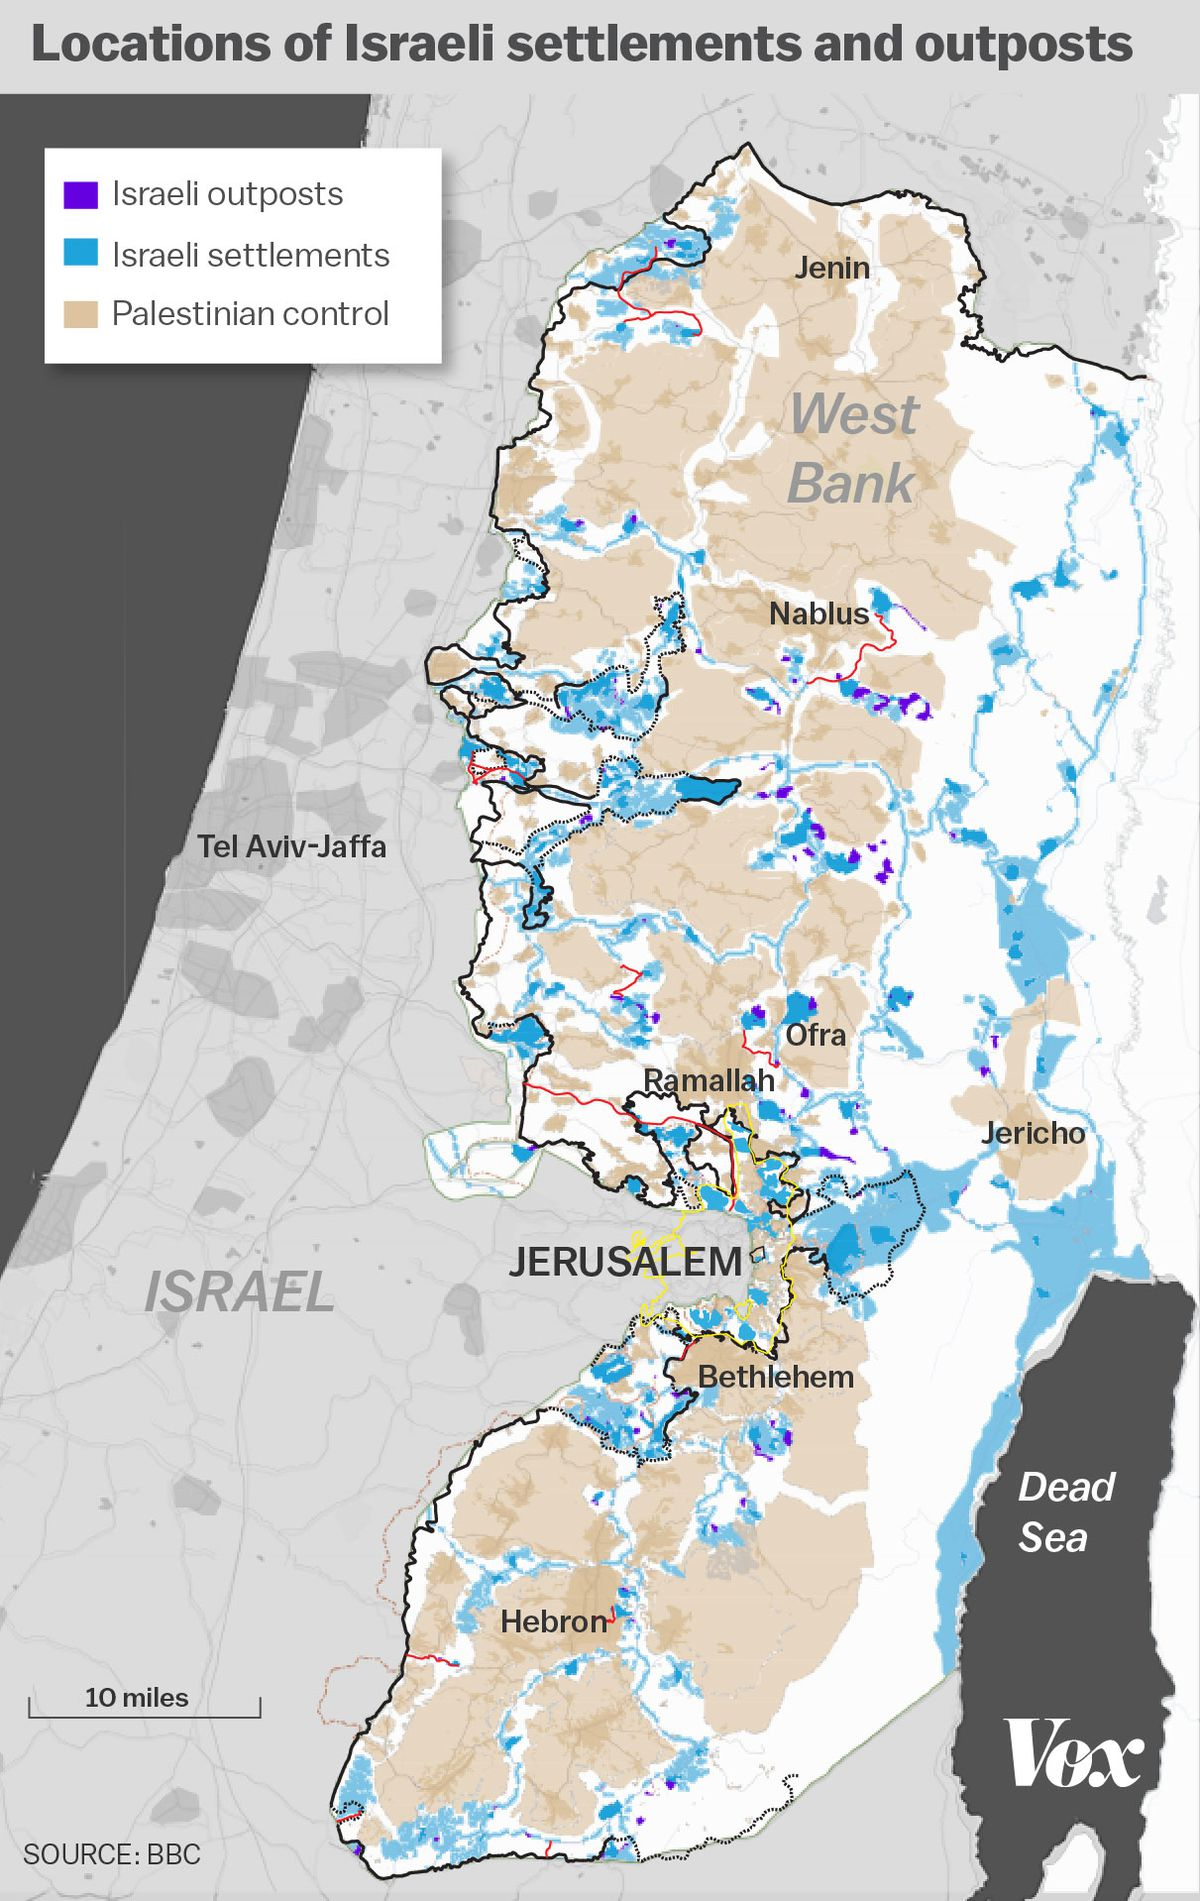 The growth of Israeli settlements, explained in 5 charts - Vox on tel aviv location on a map, 6 day war israel 1967 map, jerusalem city street map, jerusalem on europe map, nazareth israel on world map, jerusalem on a map, israel on a world map, israel rivers on a map, ancient israel empire map, 12 tribes of israel land map, israel asia map, jerusalem map israel security fence, jerusalem israel capital, old city jerusalem israel map, israel's map, jerusalem map ancient times, jerusalem map old city wall, ramat gan israel on world map, acre israel on world map, jerusalem bethlehem nazareth map,